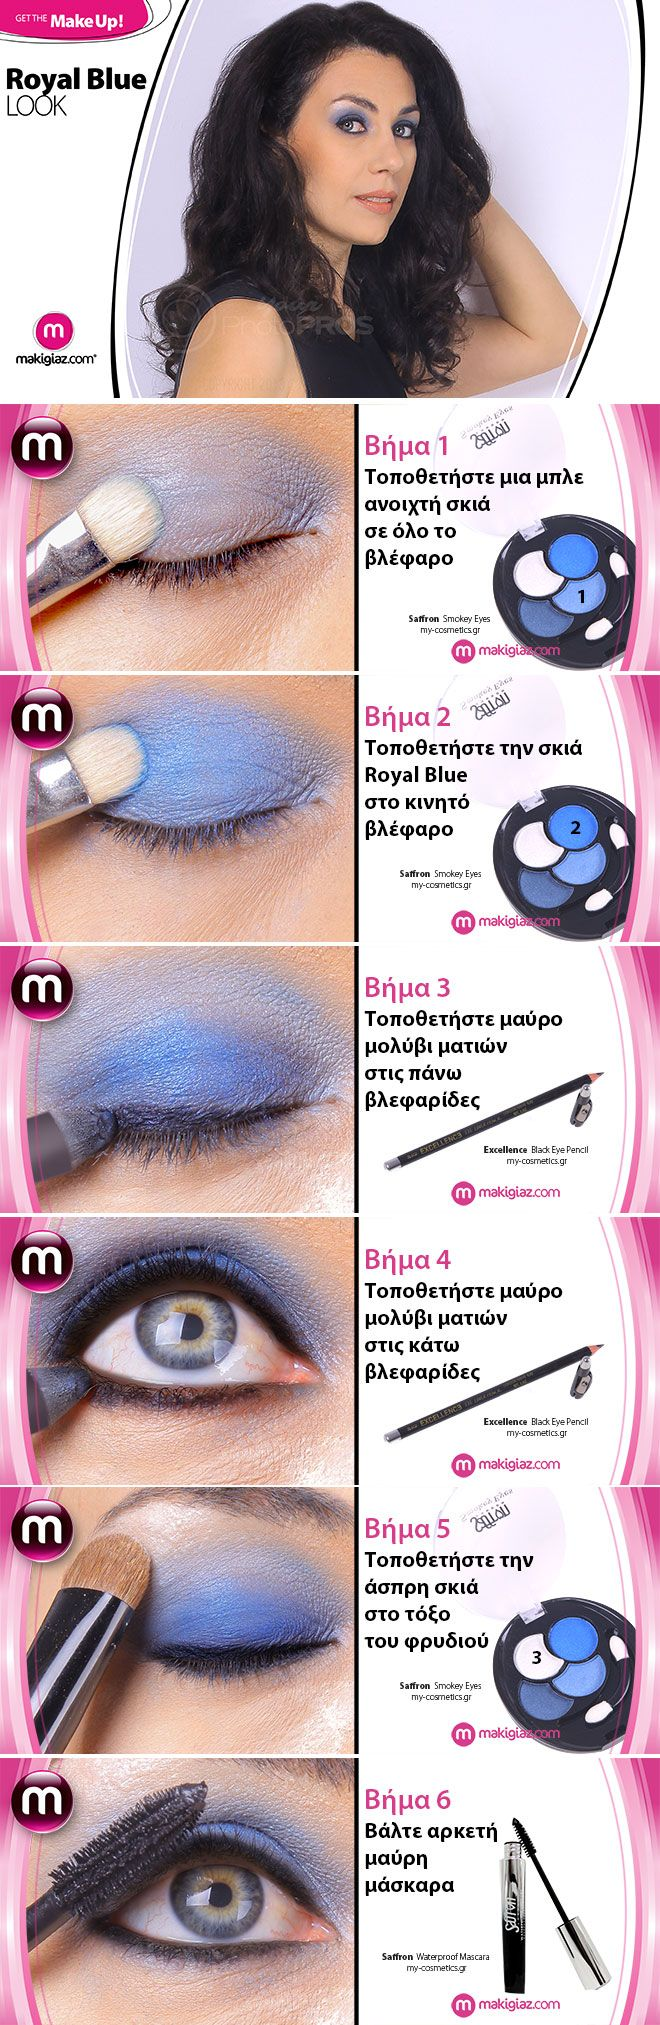 MakigiazCom presents a step by step tutorial for the Royal Blue Makeup Look that will suit you perfect for Spring time but for the Summer as well as it is very close.  English Article http://makigiaz.com/blog/get-the-makeup-royal-blue-en/  Greek Article http://makigiaz.com/blog/get-the-makeup-royal-blue-by-makigiaz-com/